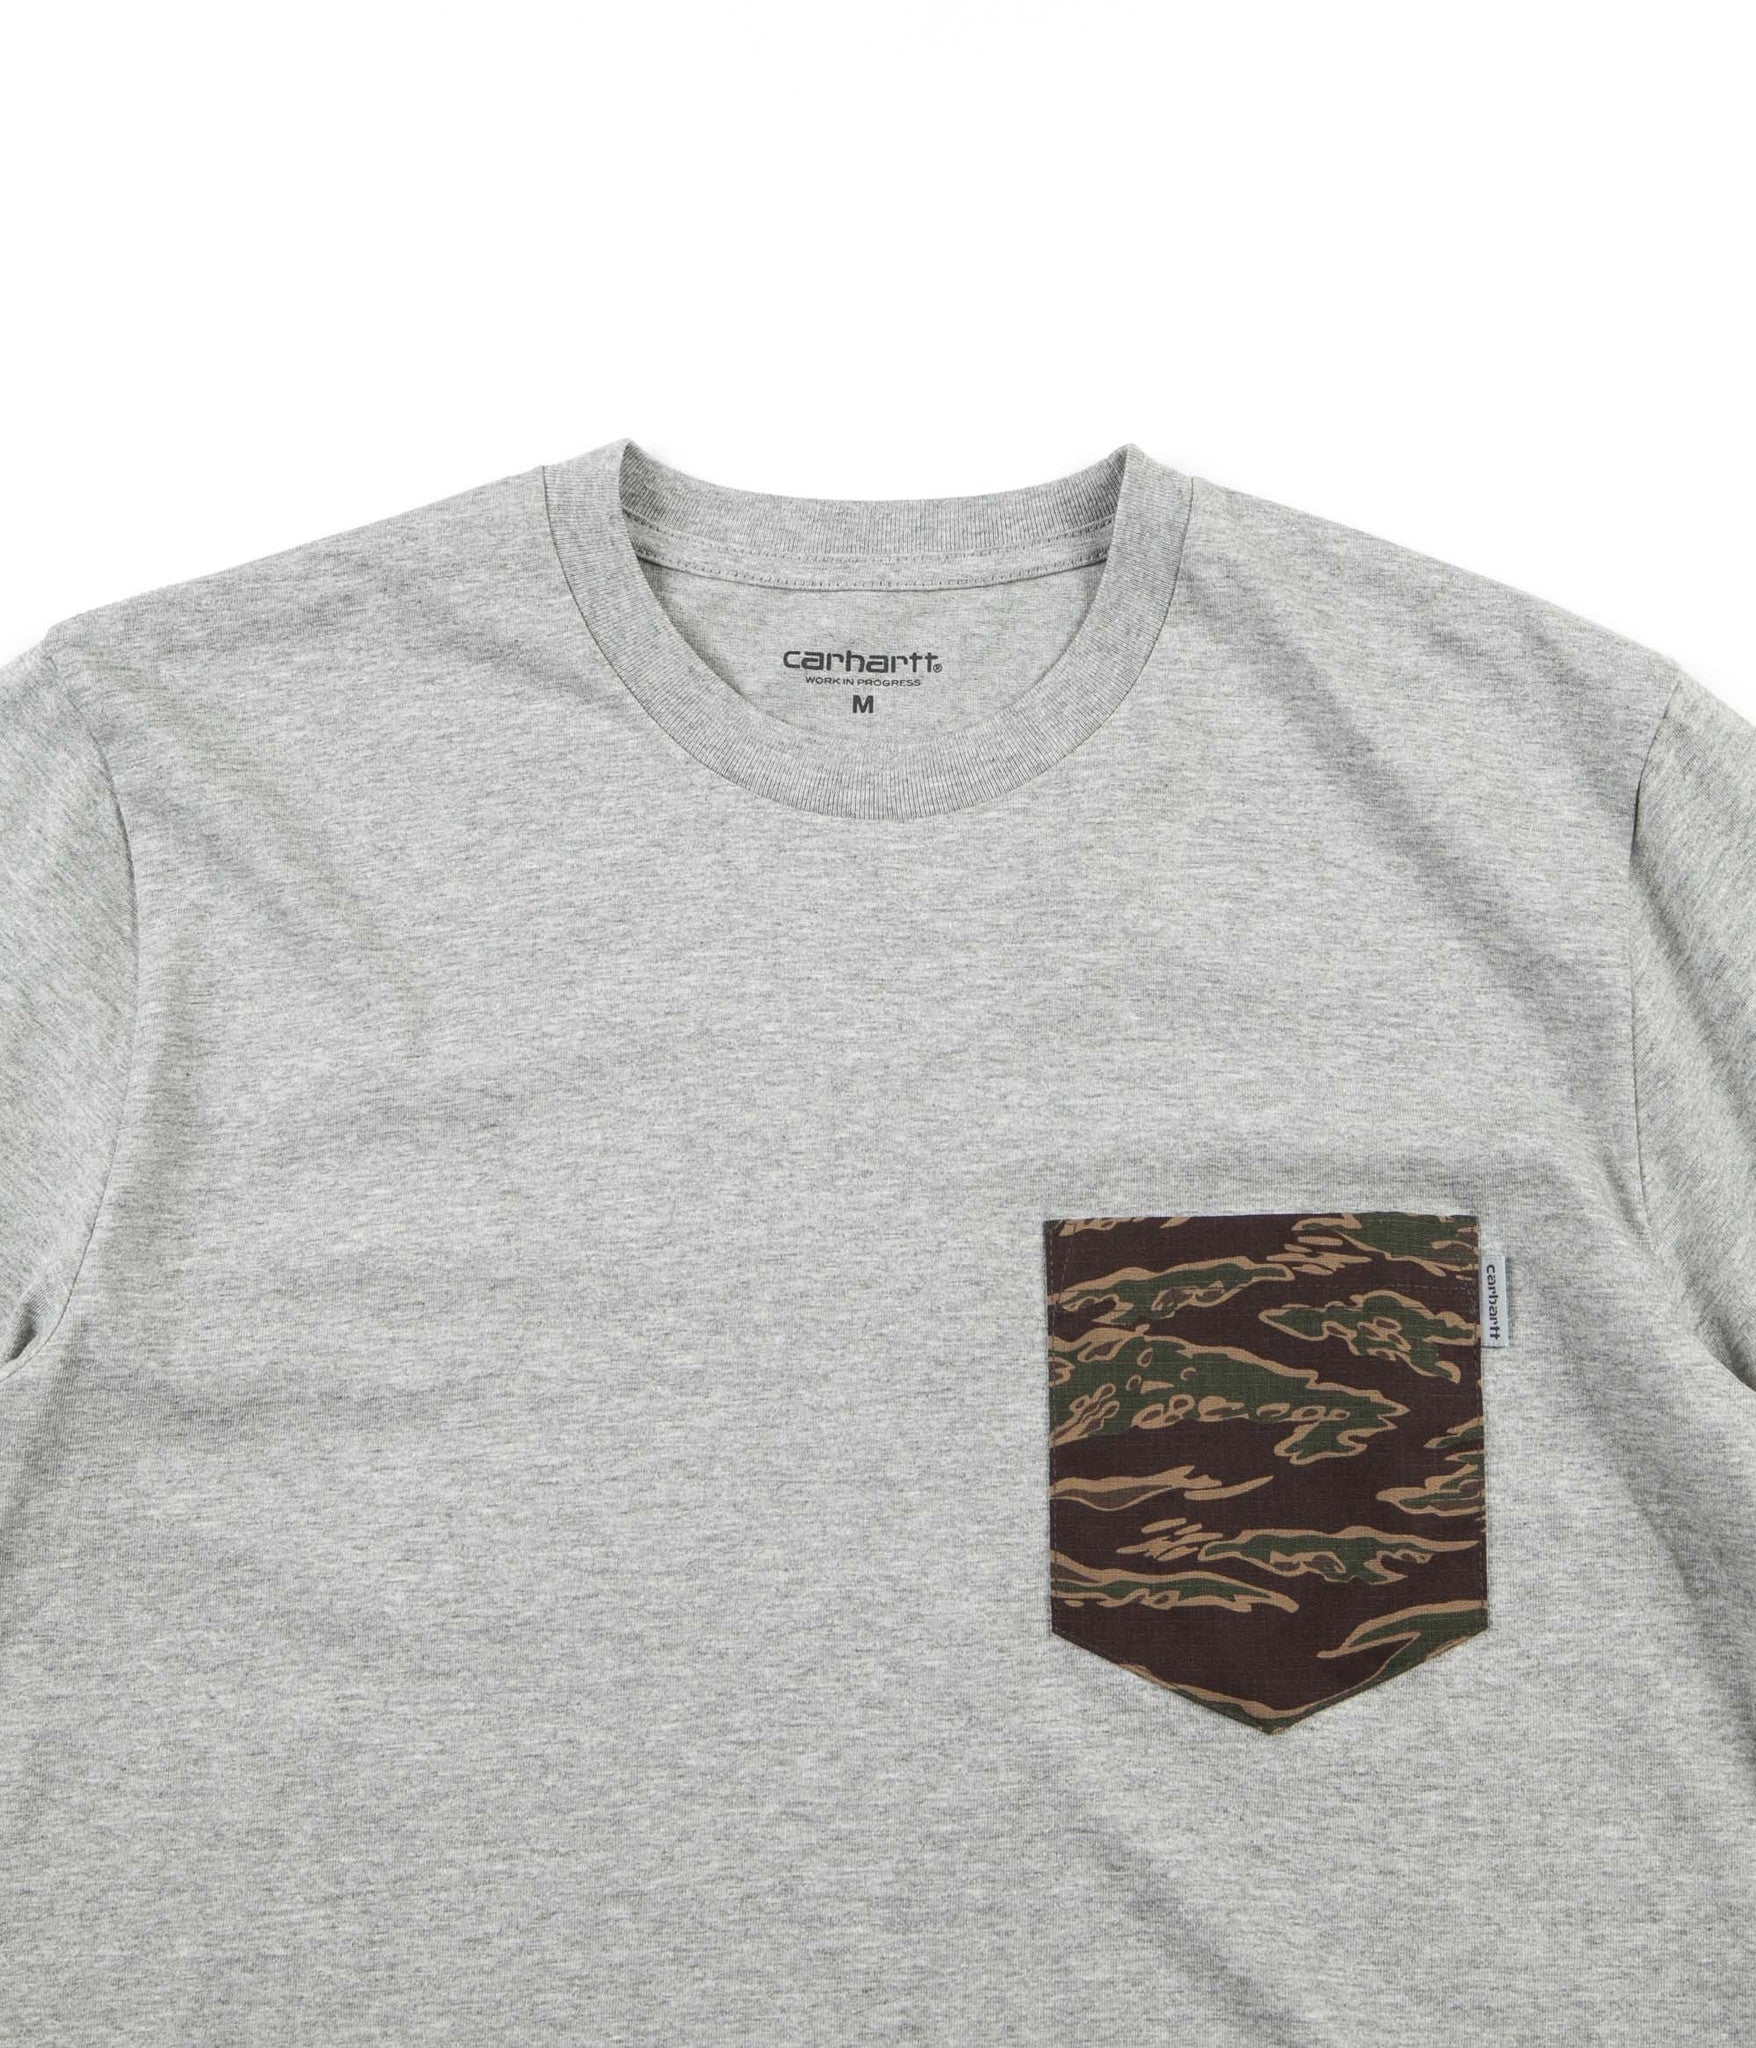 Carhartt Lester Pocket T-Shirt - Grey Heather / Camo Tiger